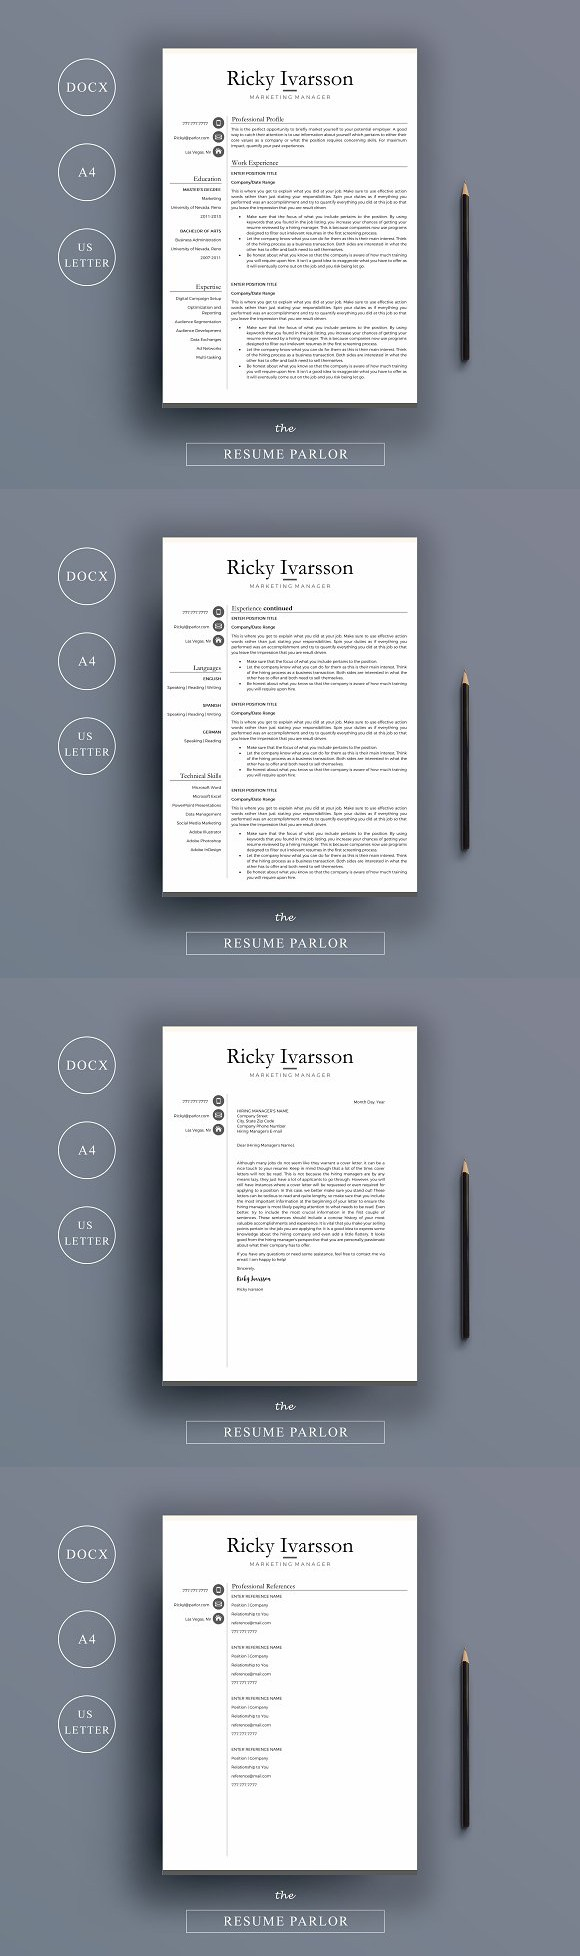 Resume 4 Page A4 + US Letter Sizes. Nursing Resume. 15